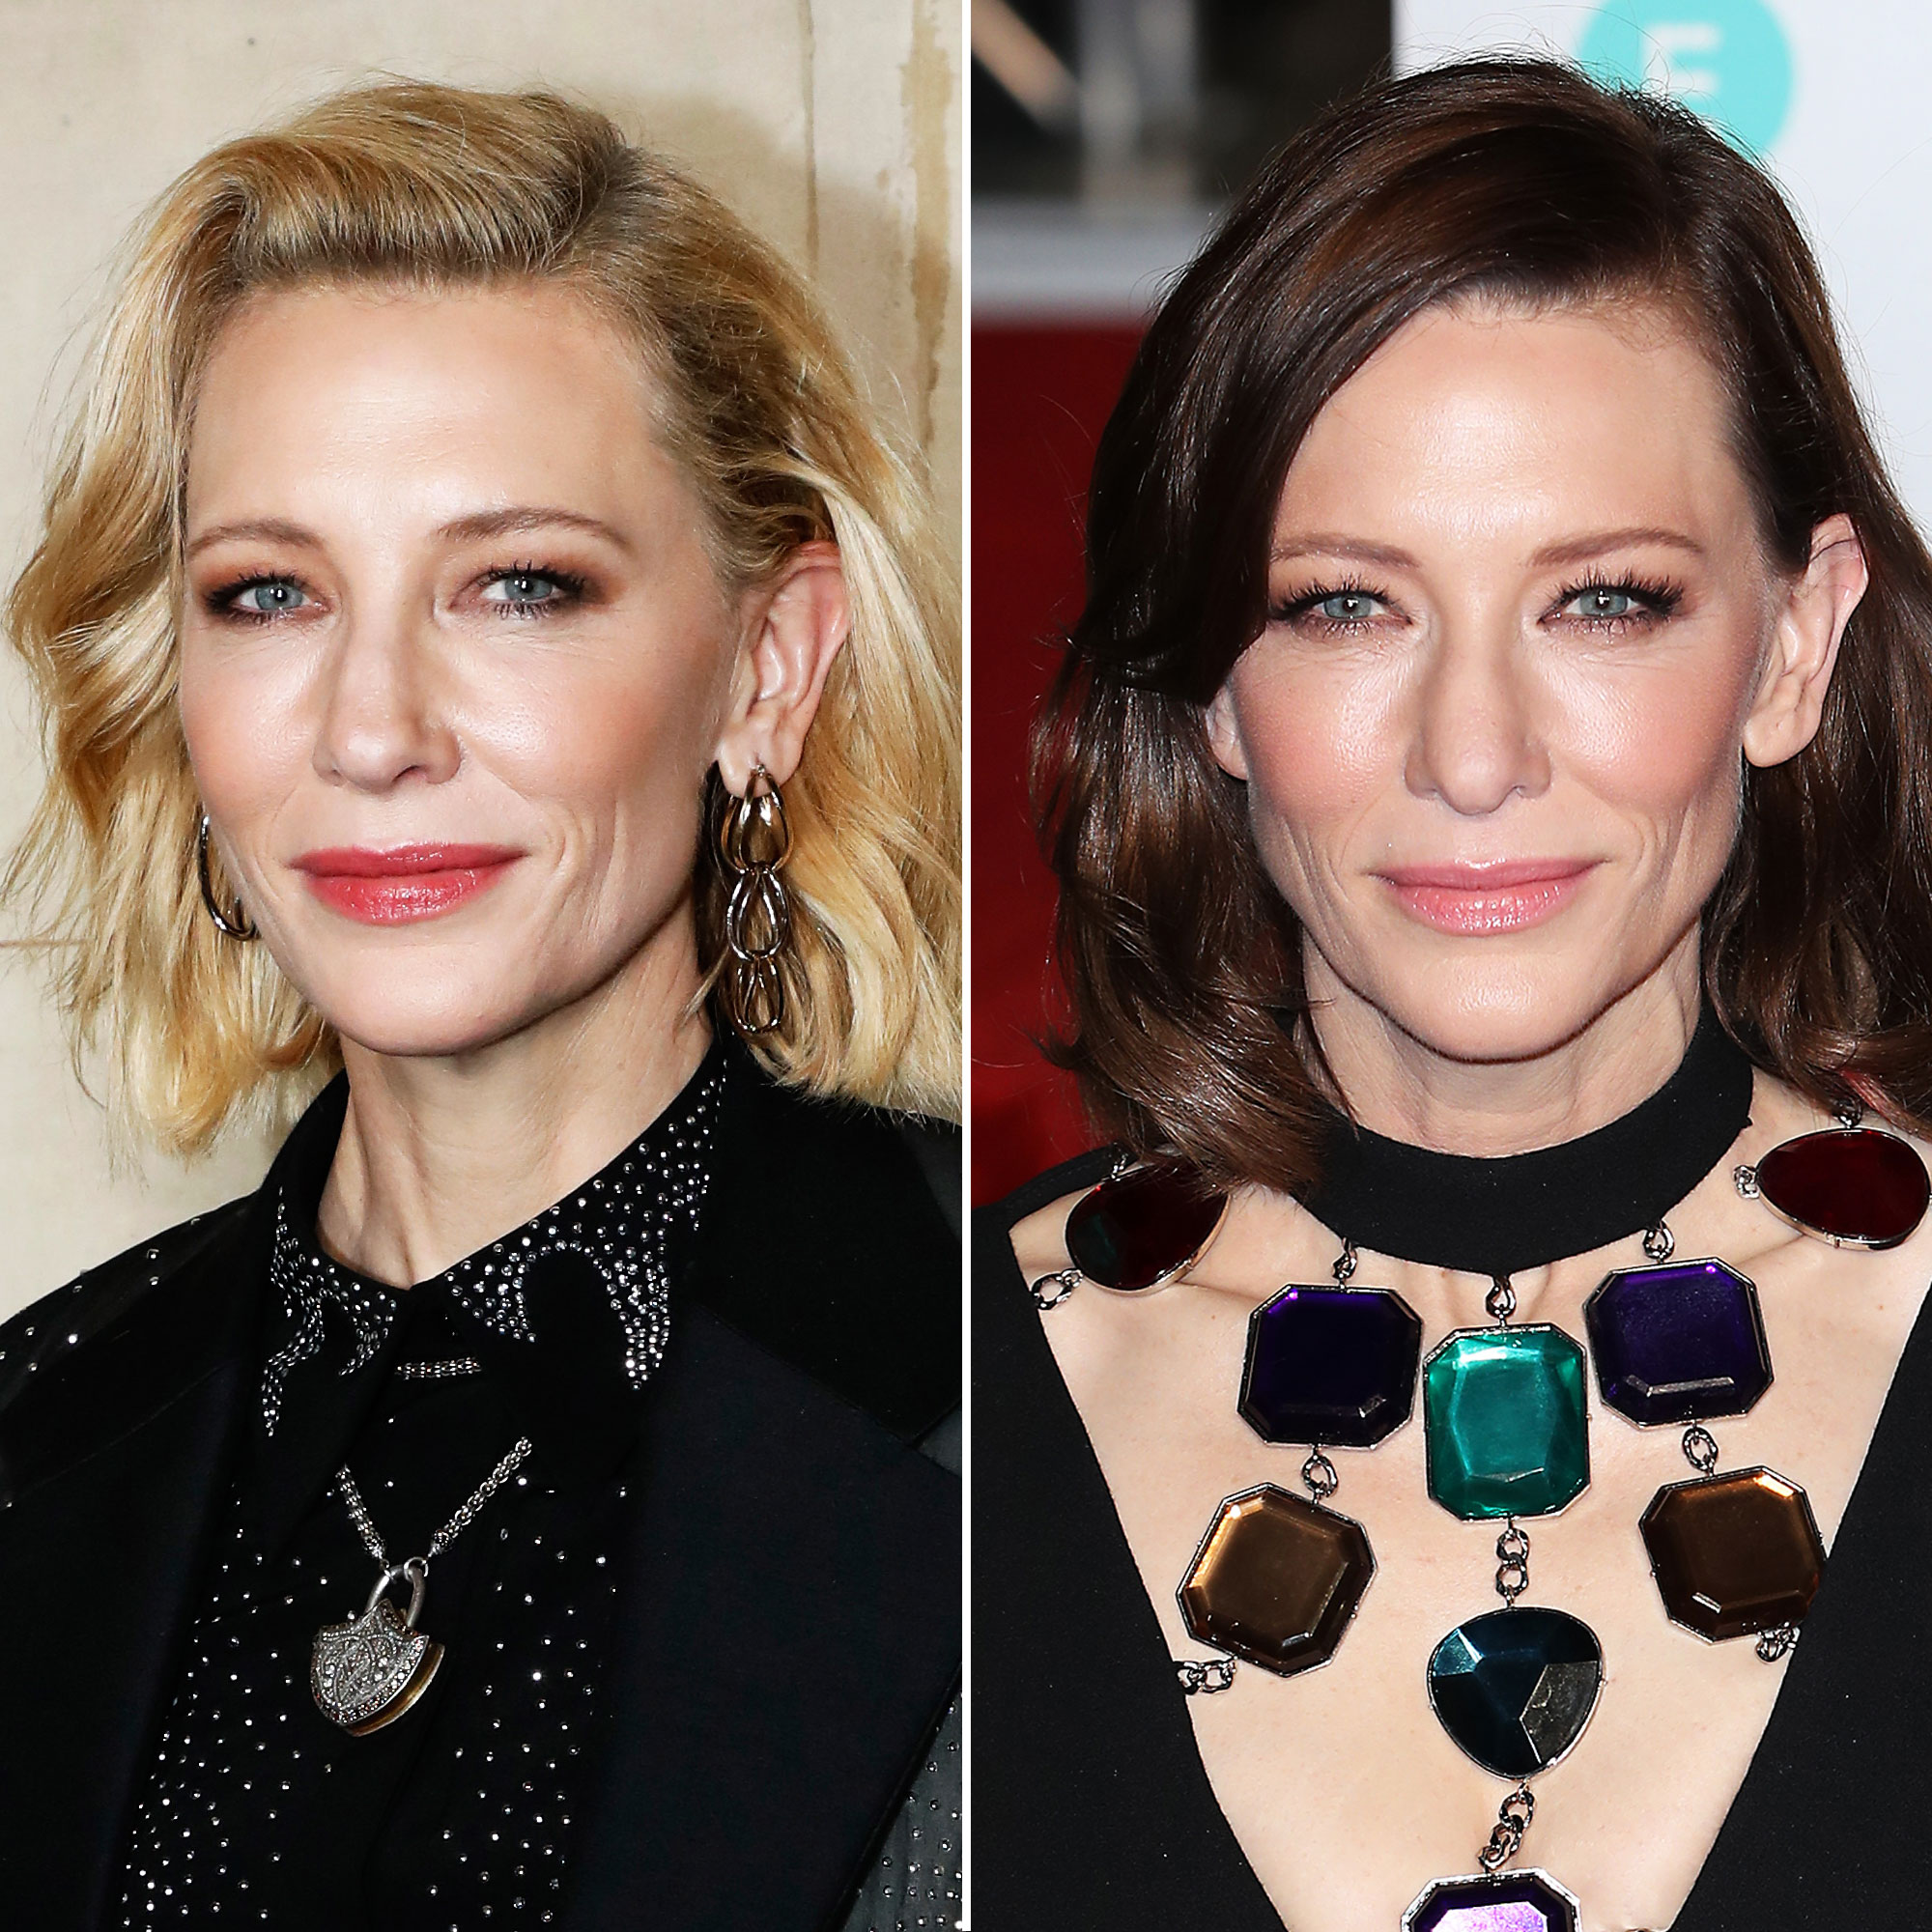 Cate Blanchett - The Aussie actress showed off her new brown hair color for a role at the National Theater at the 2019 BAFTA Awards on Sunday, February 10.